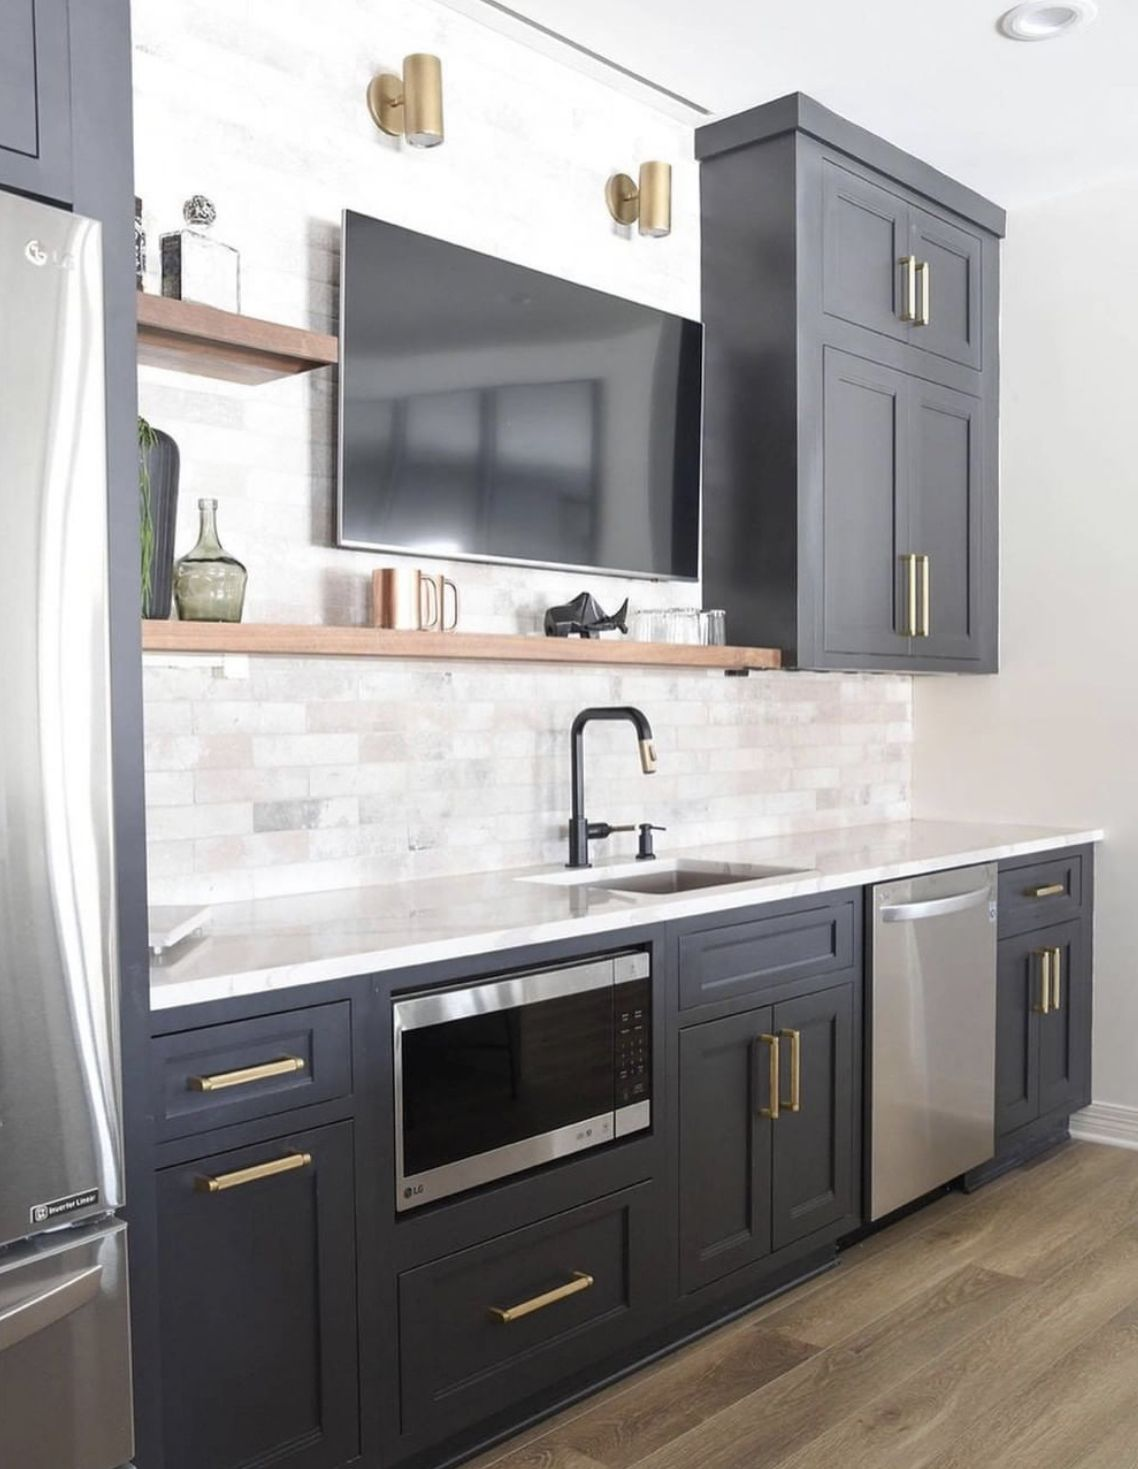 Pin By Groundtofork On Basement Life In 2020 Basement Kitchenette Kitchenette Kitchen Cabinets